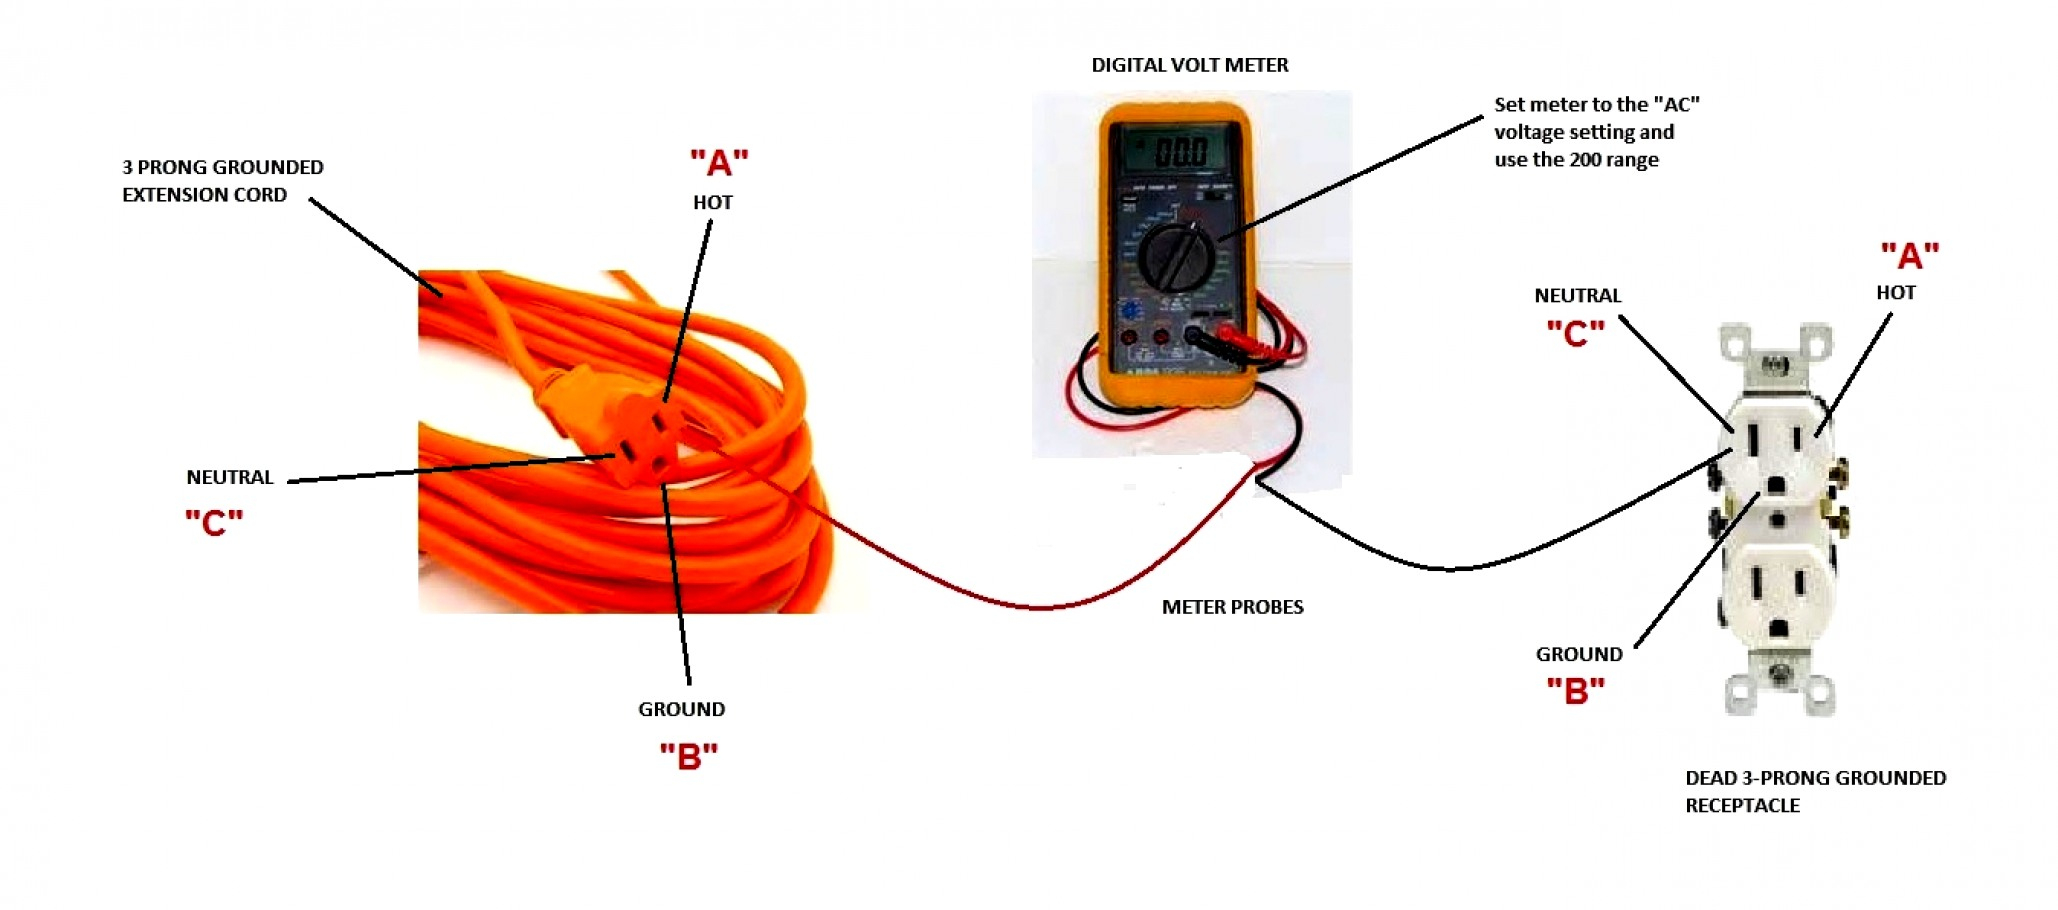 Basic Extension Cord Wiring Diagram from annawiringdiagram.com